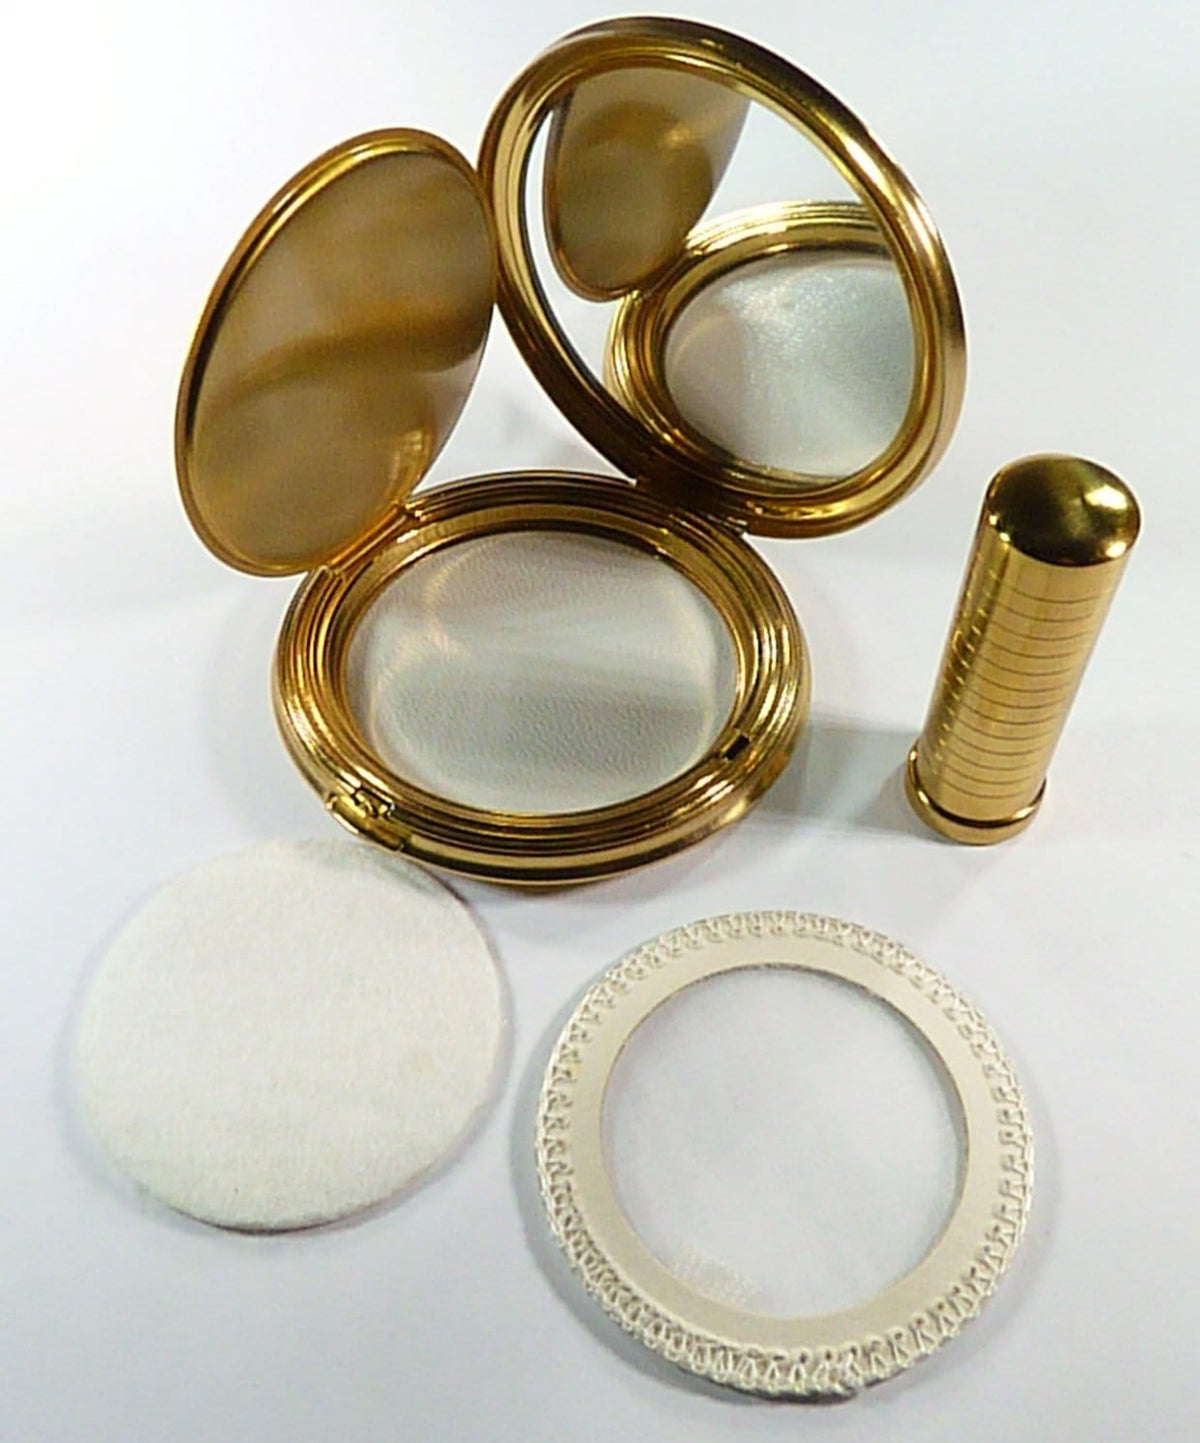 Clean Unused Vintage Compact Mirror